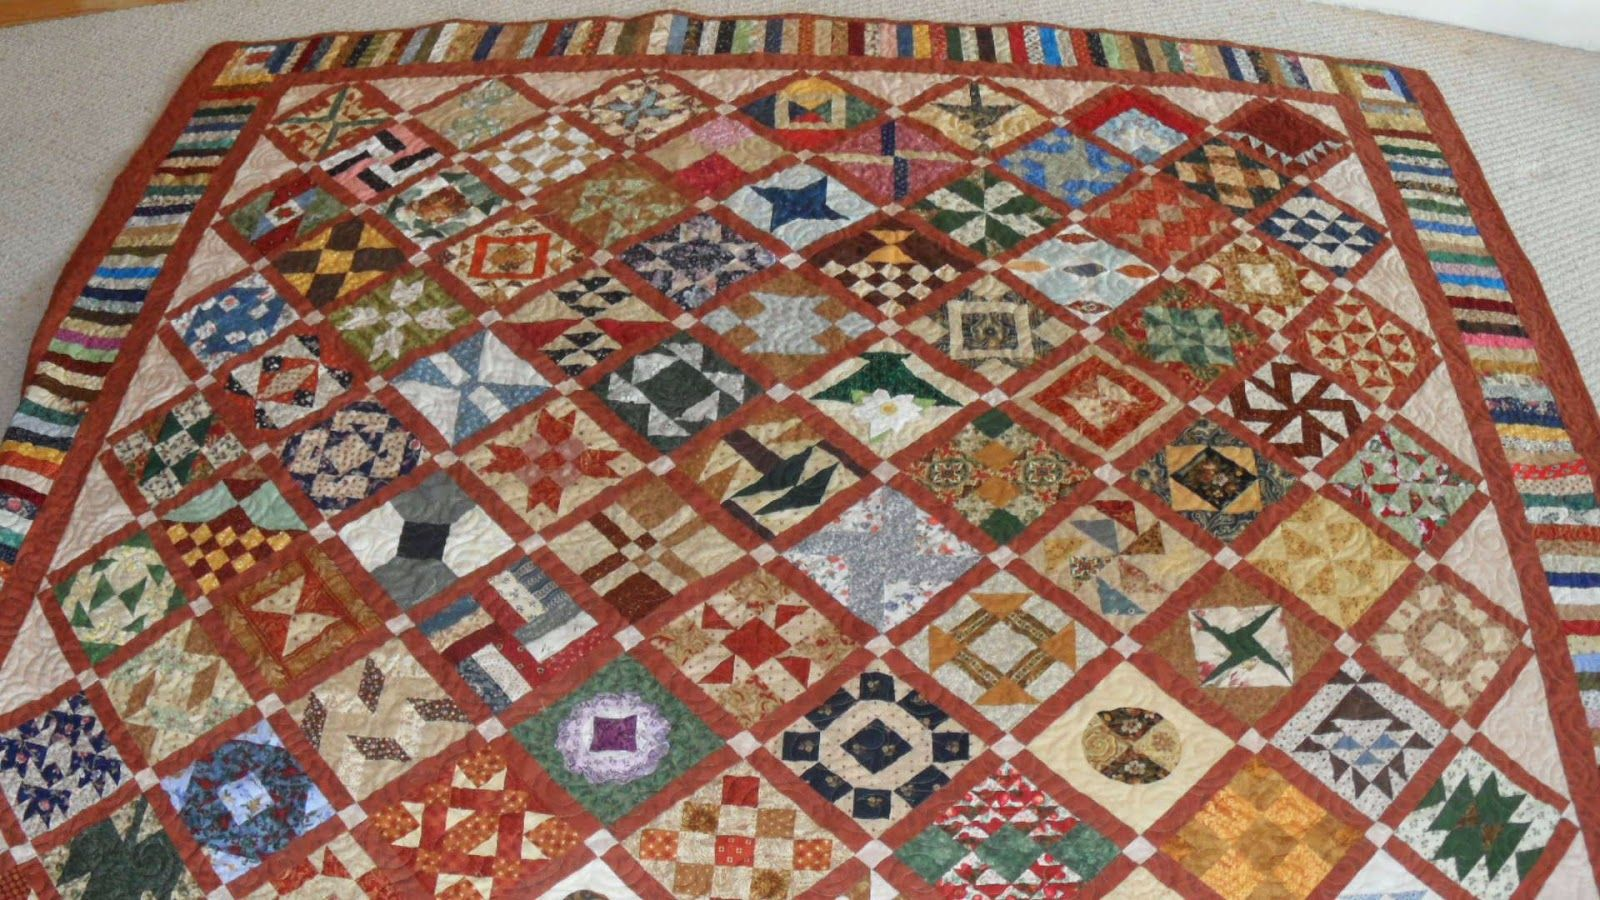 Sharing My Quilts